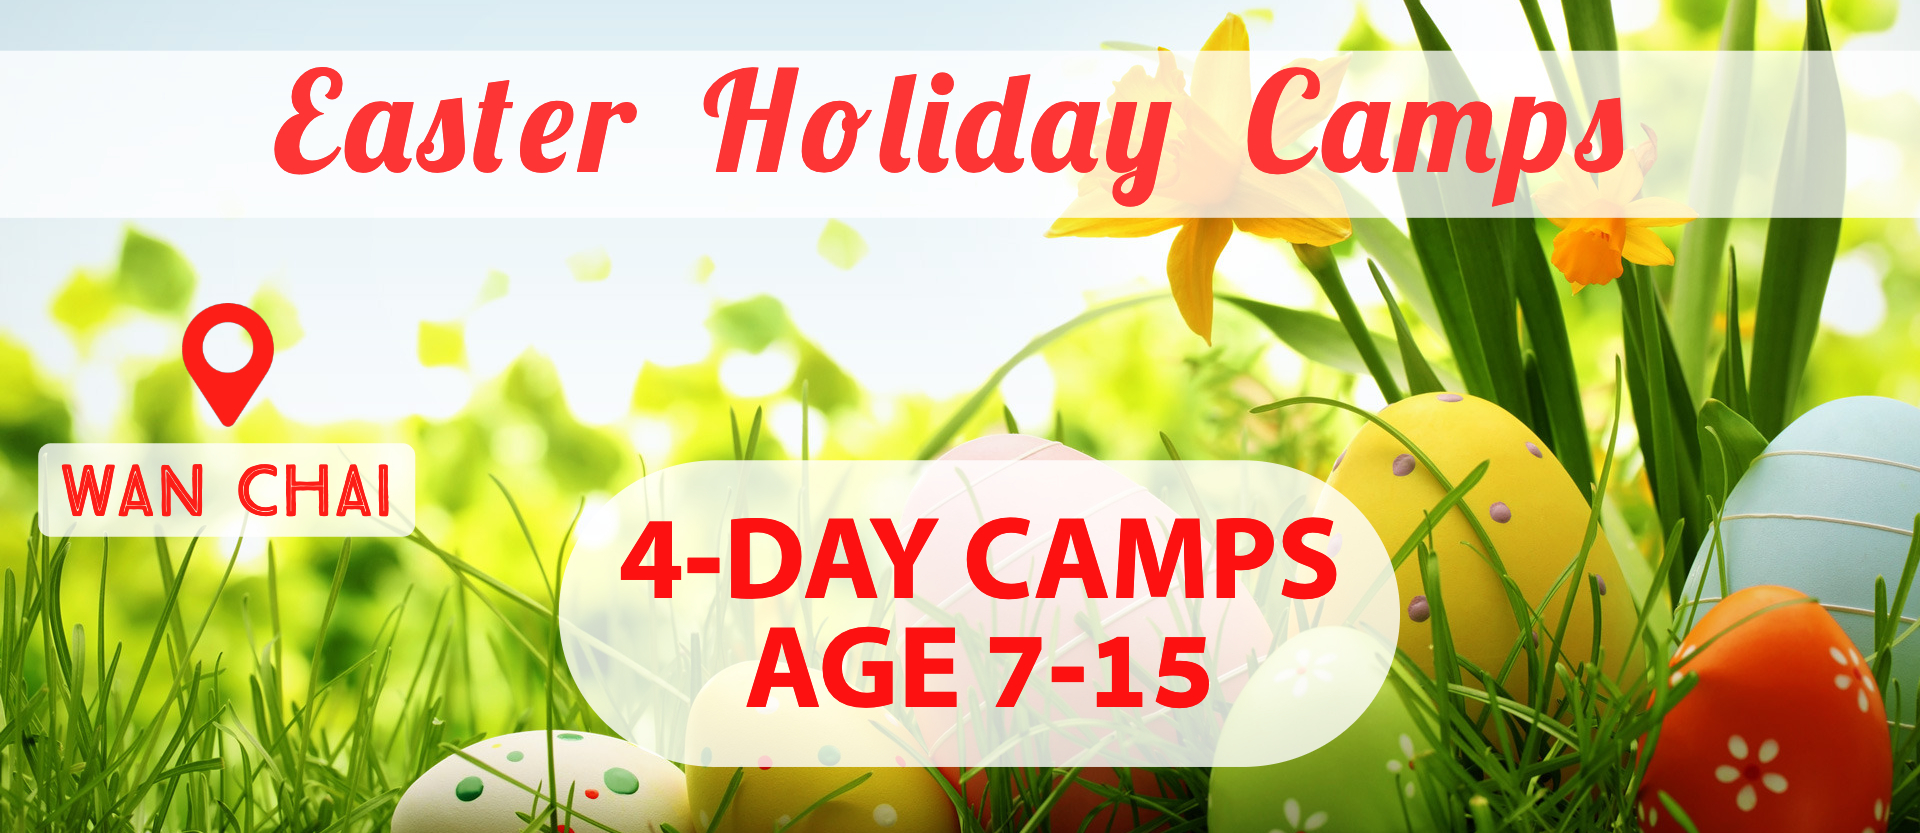 Easter Holiday Camps 2019